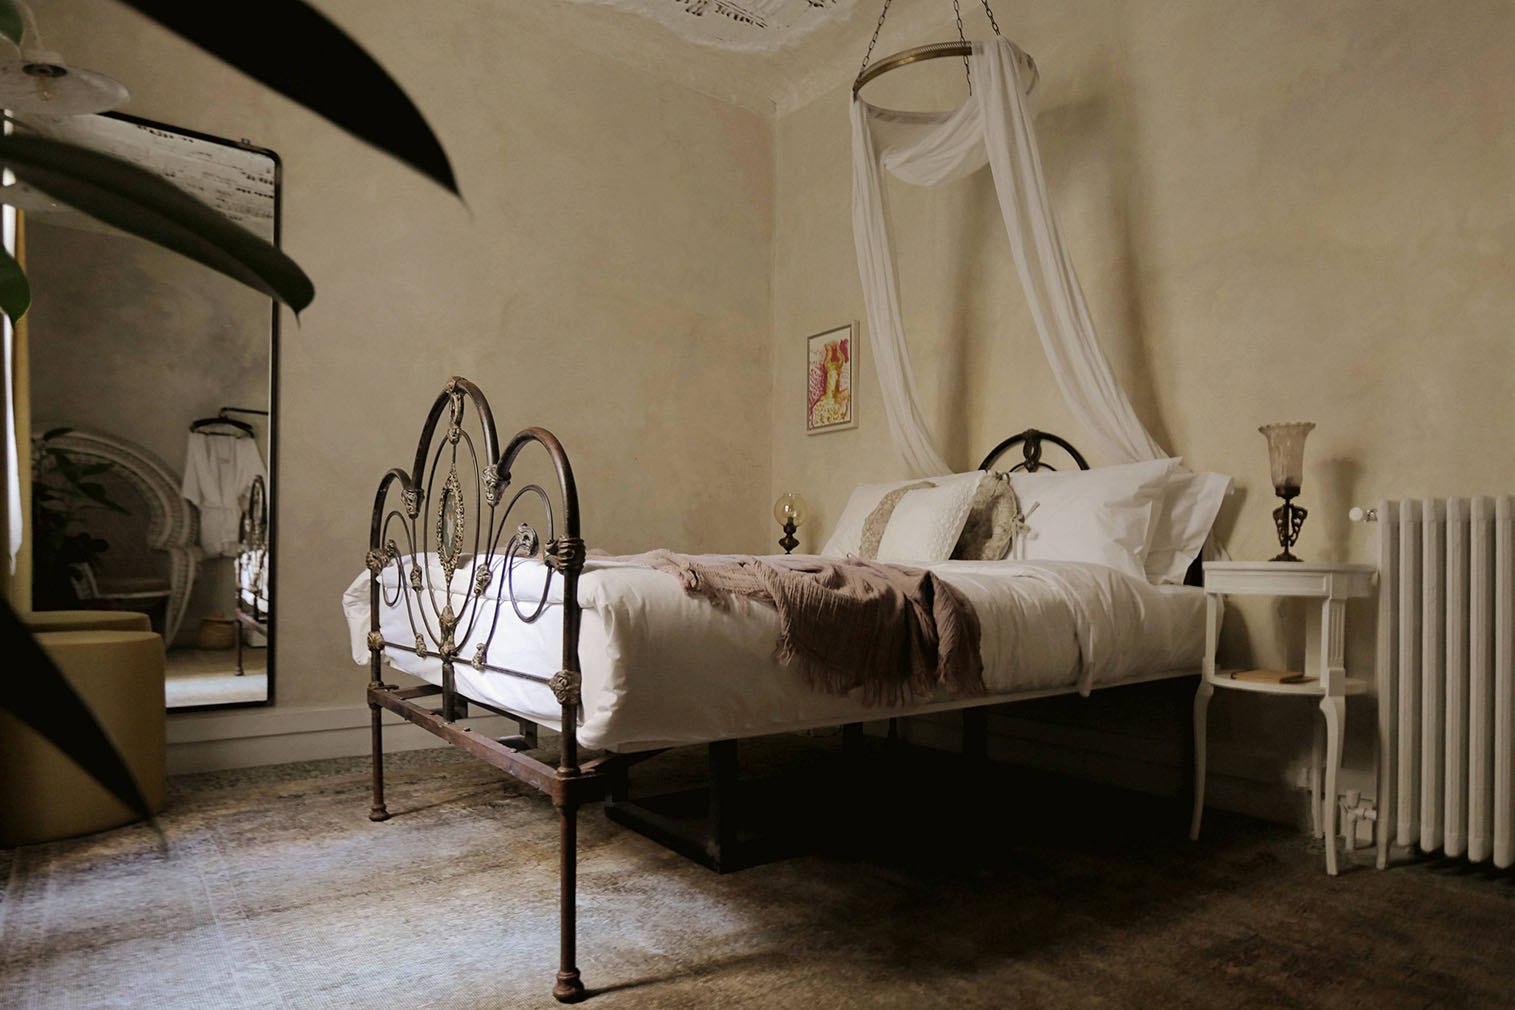 One of the bedroom suites at Shila, Athens